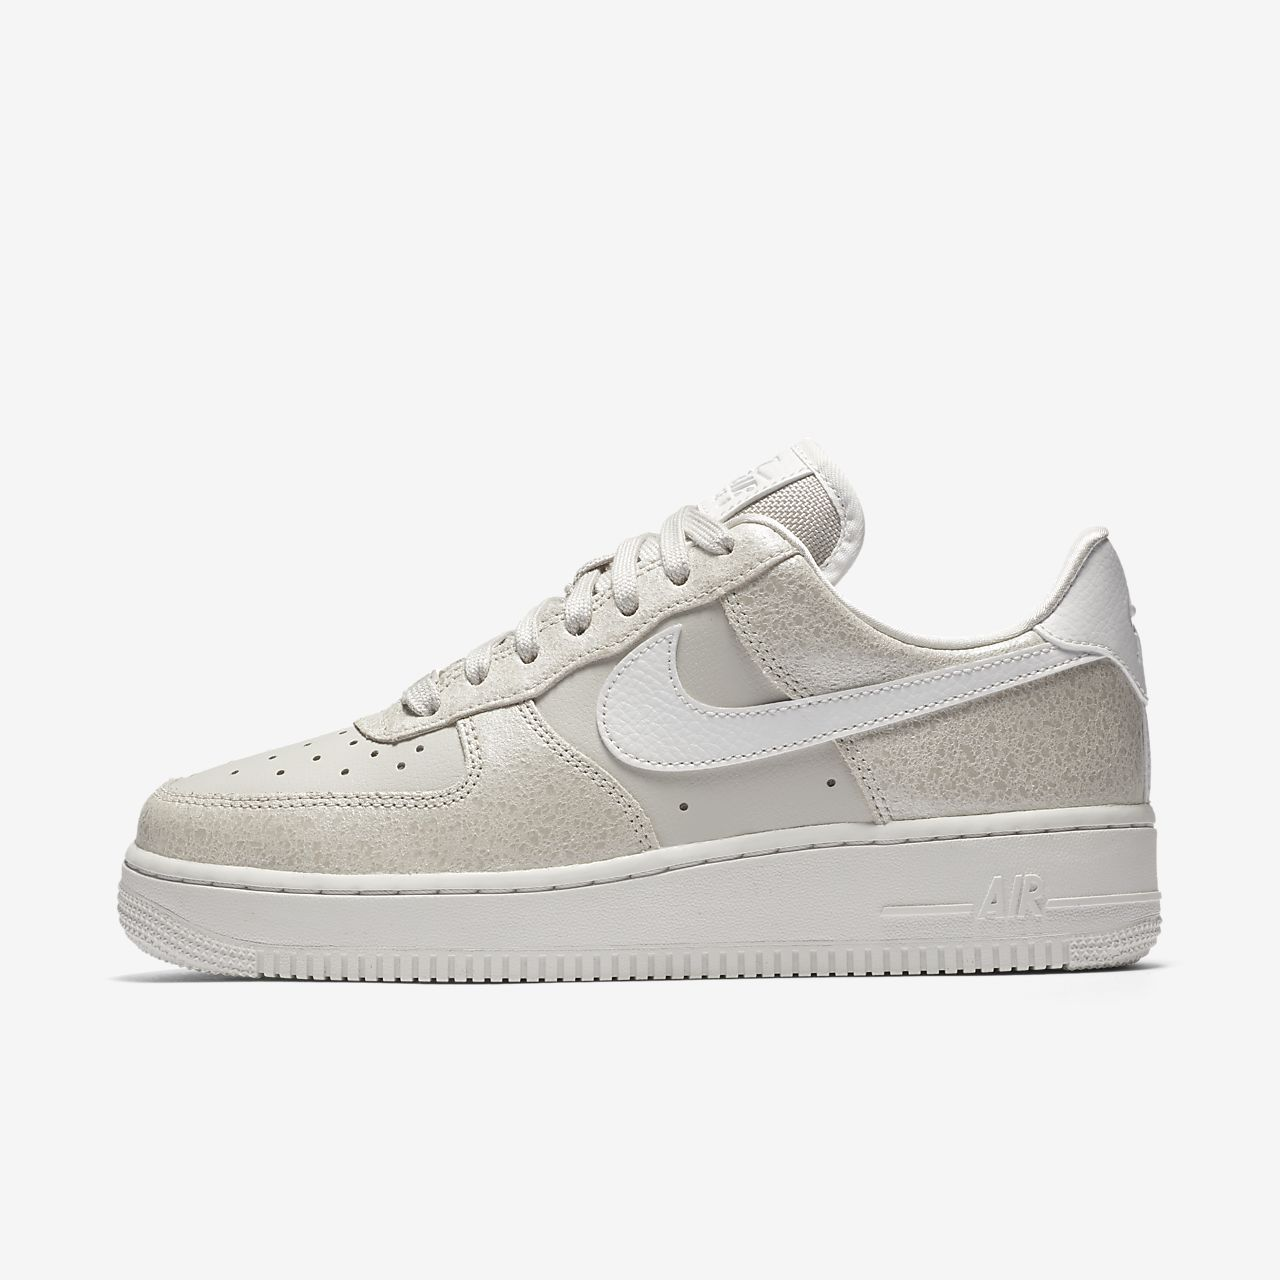 nike air force 1 39 07 low premium women 39 s shoe. Black Bedroom Furniture Sets. Home Design Ideas